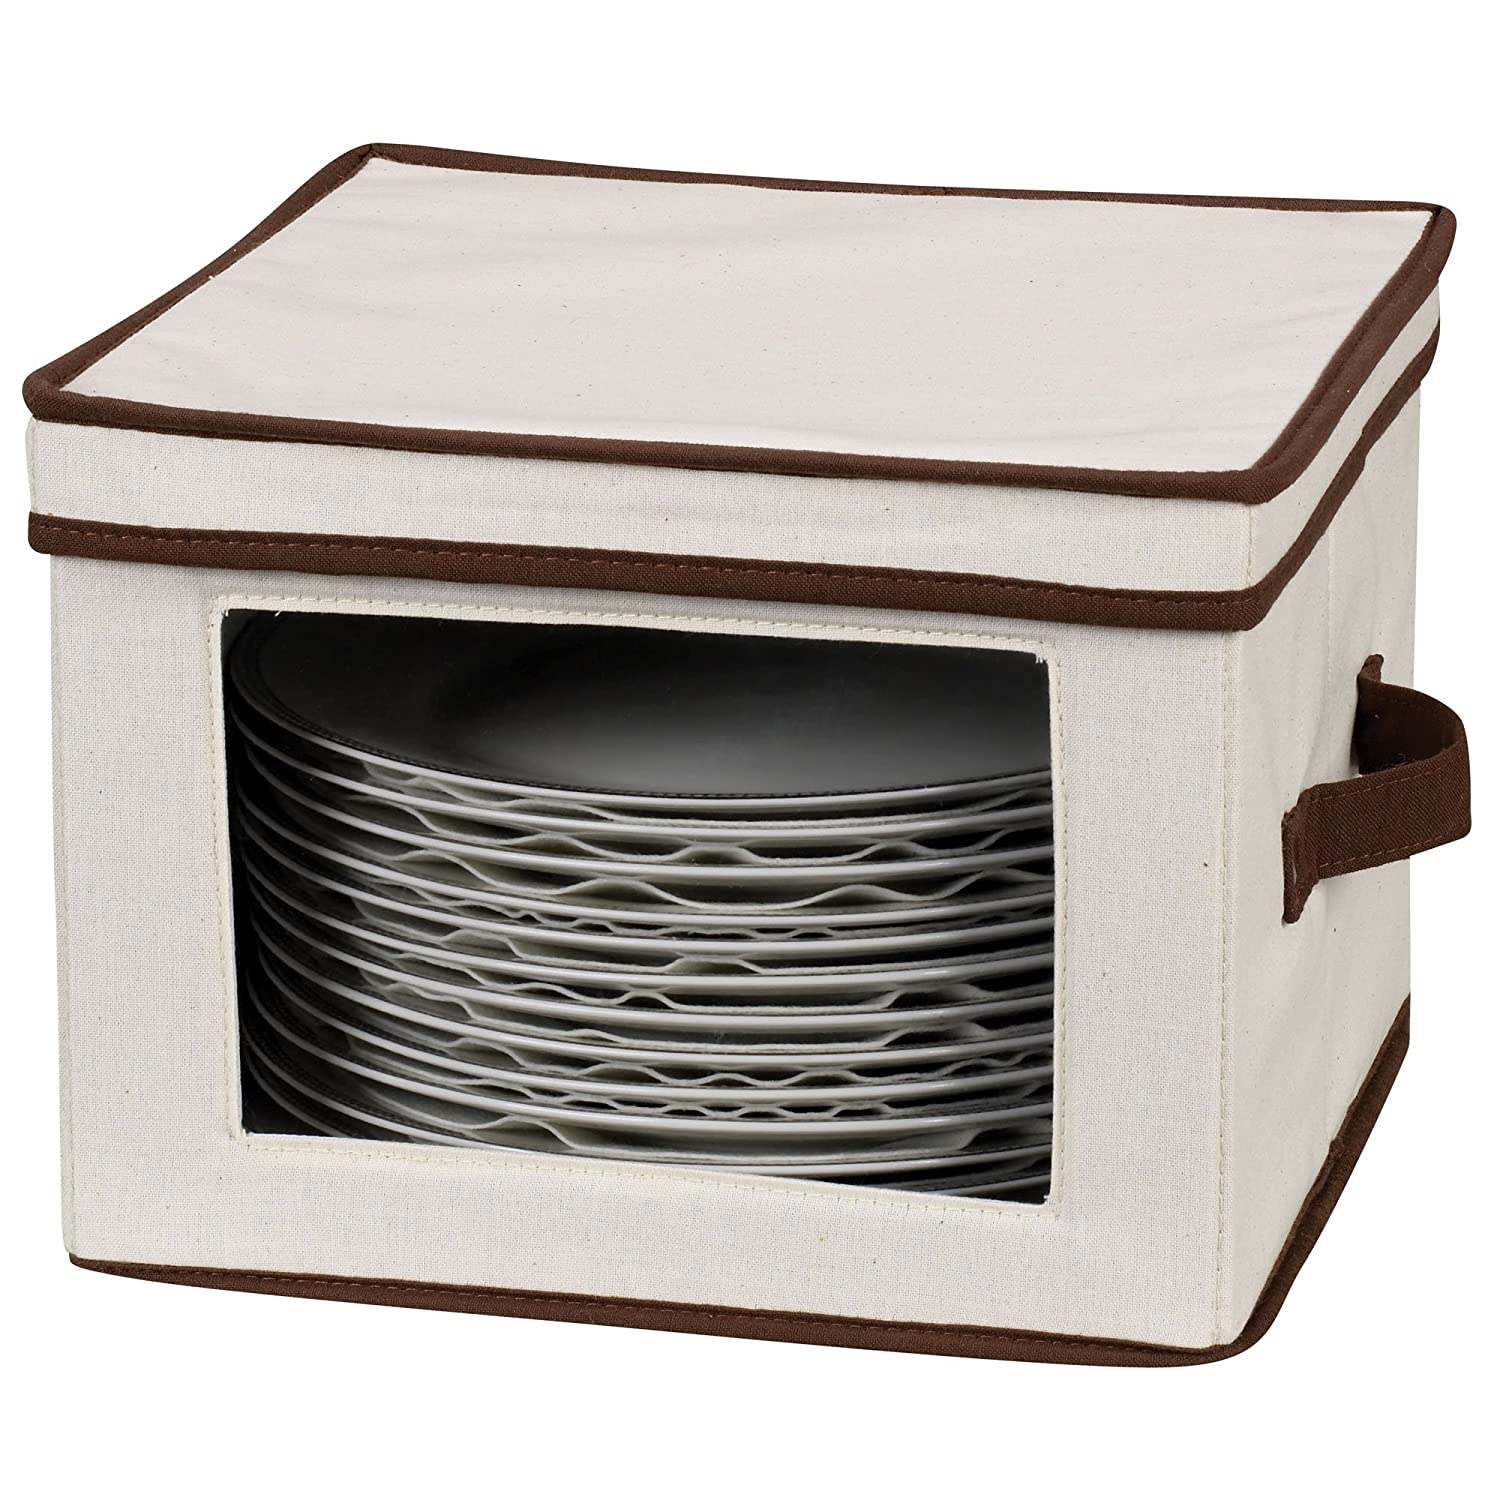 Amazon.com Household Essentials 536 Dinnerware Storage Box with Lid and Handles | Storage Bin for Dinner Plates | Natural Canvas with Brown Trim Home u0026 ...  sc 1 st  Amazon.com & Amazon.com: Household Essentials 536 Dinnerware Storage Box with Lid ...